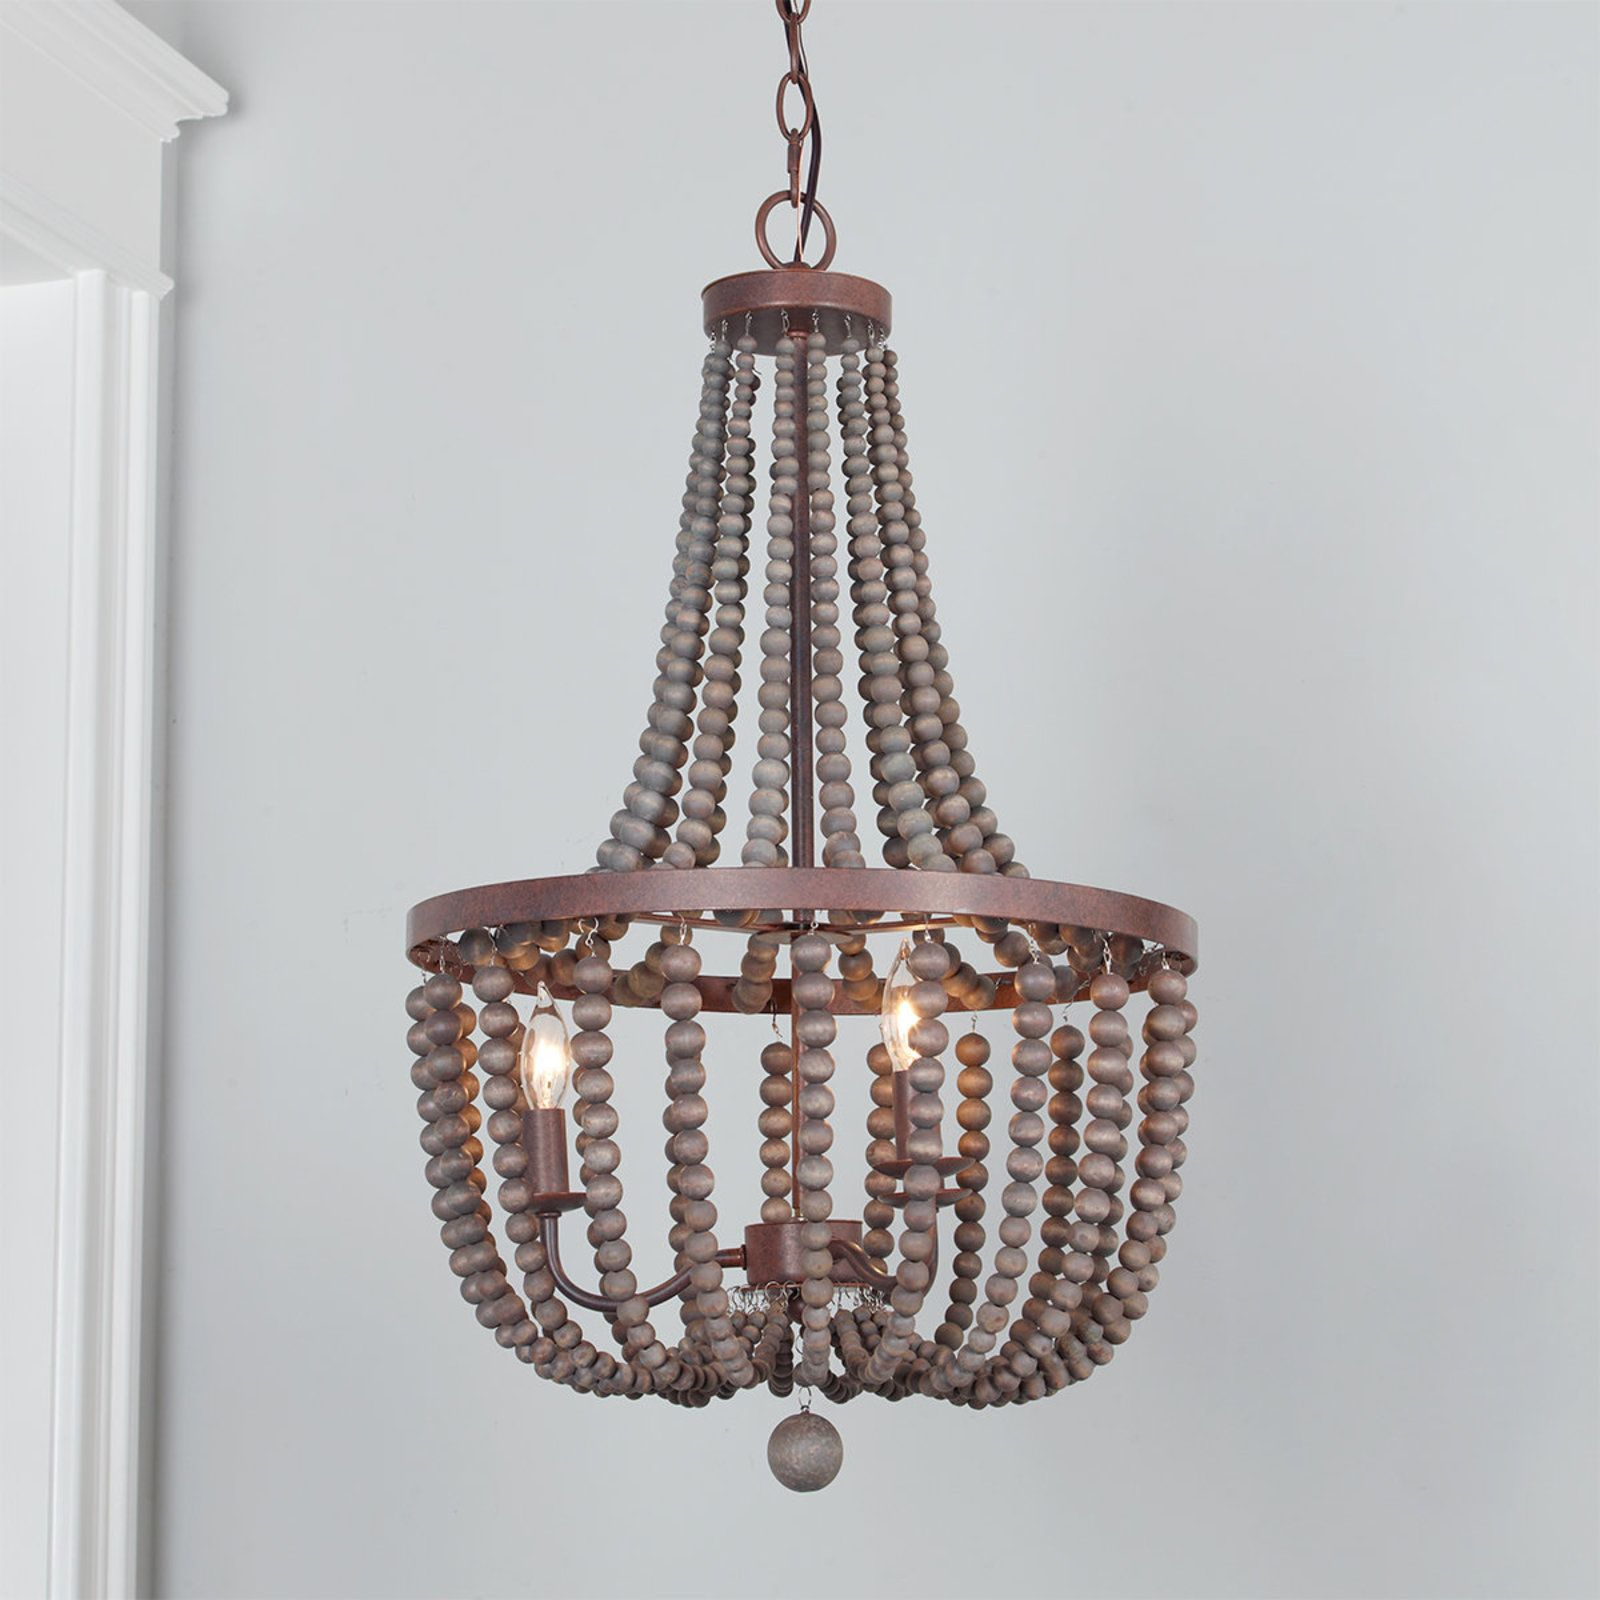 Refined Beaded Drop Basket Chandelier | Autumn Decor | Wood Within Nehemiah 3 Light Empire Chandeliers (Gallery 16 of 30)